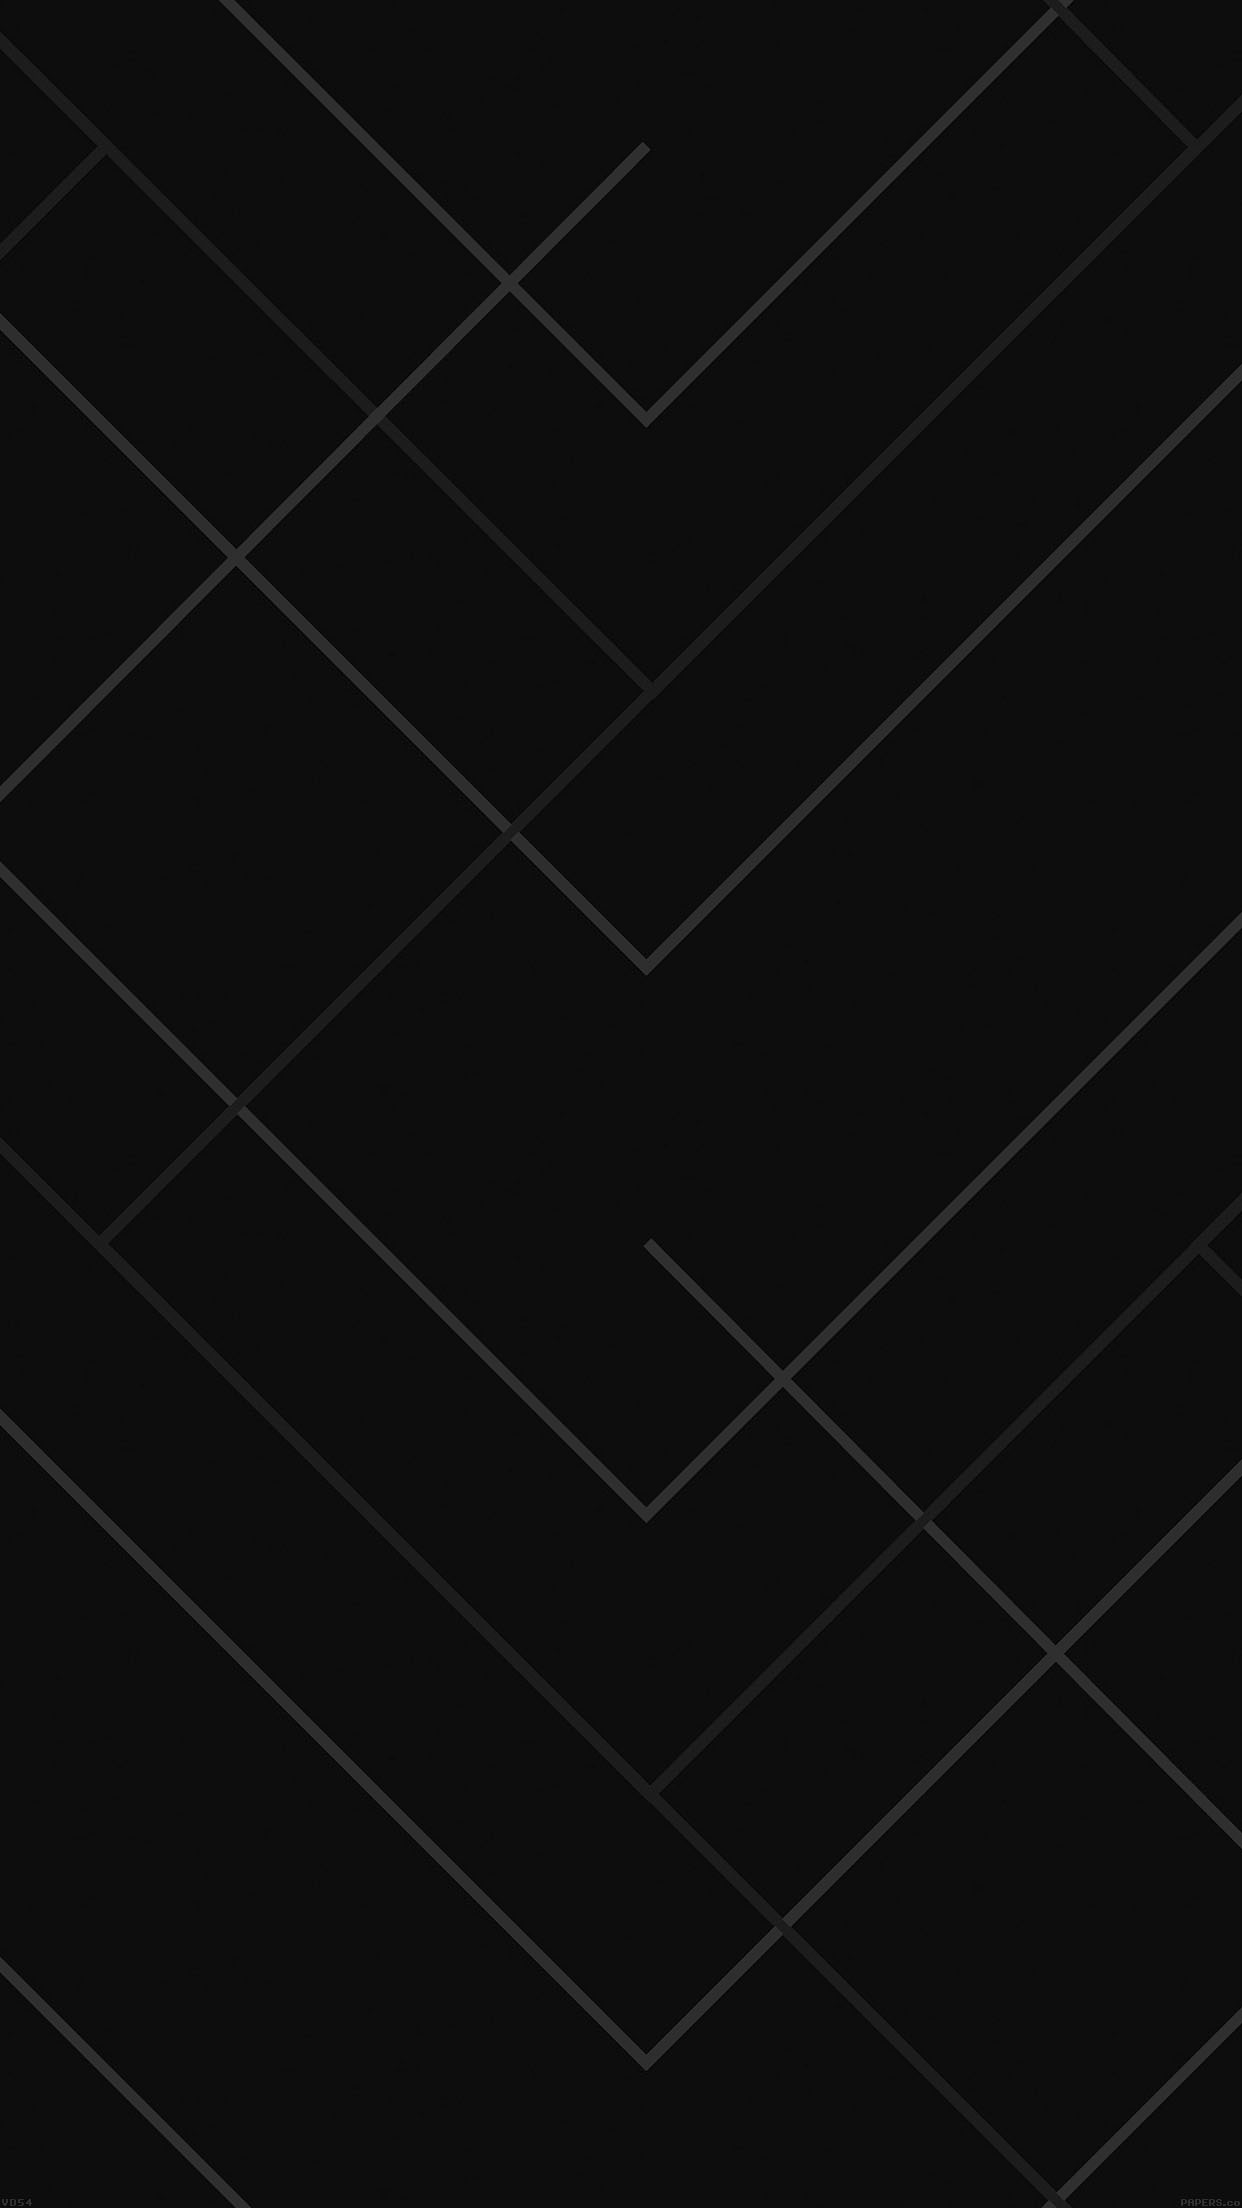 Black Wallpaper Hd For Android Posted By Sarah Simpson